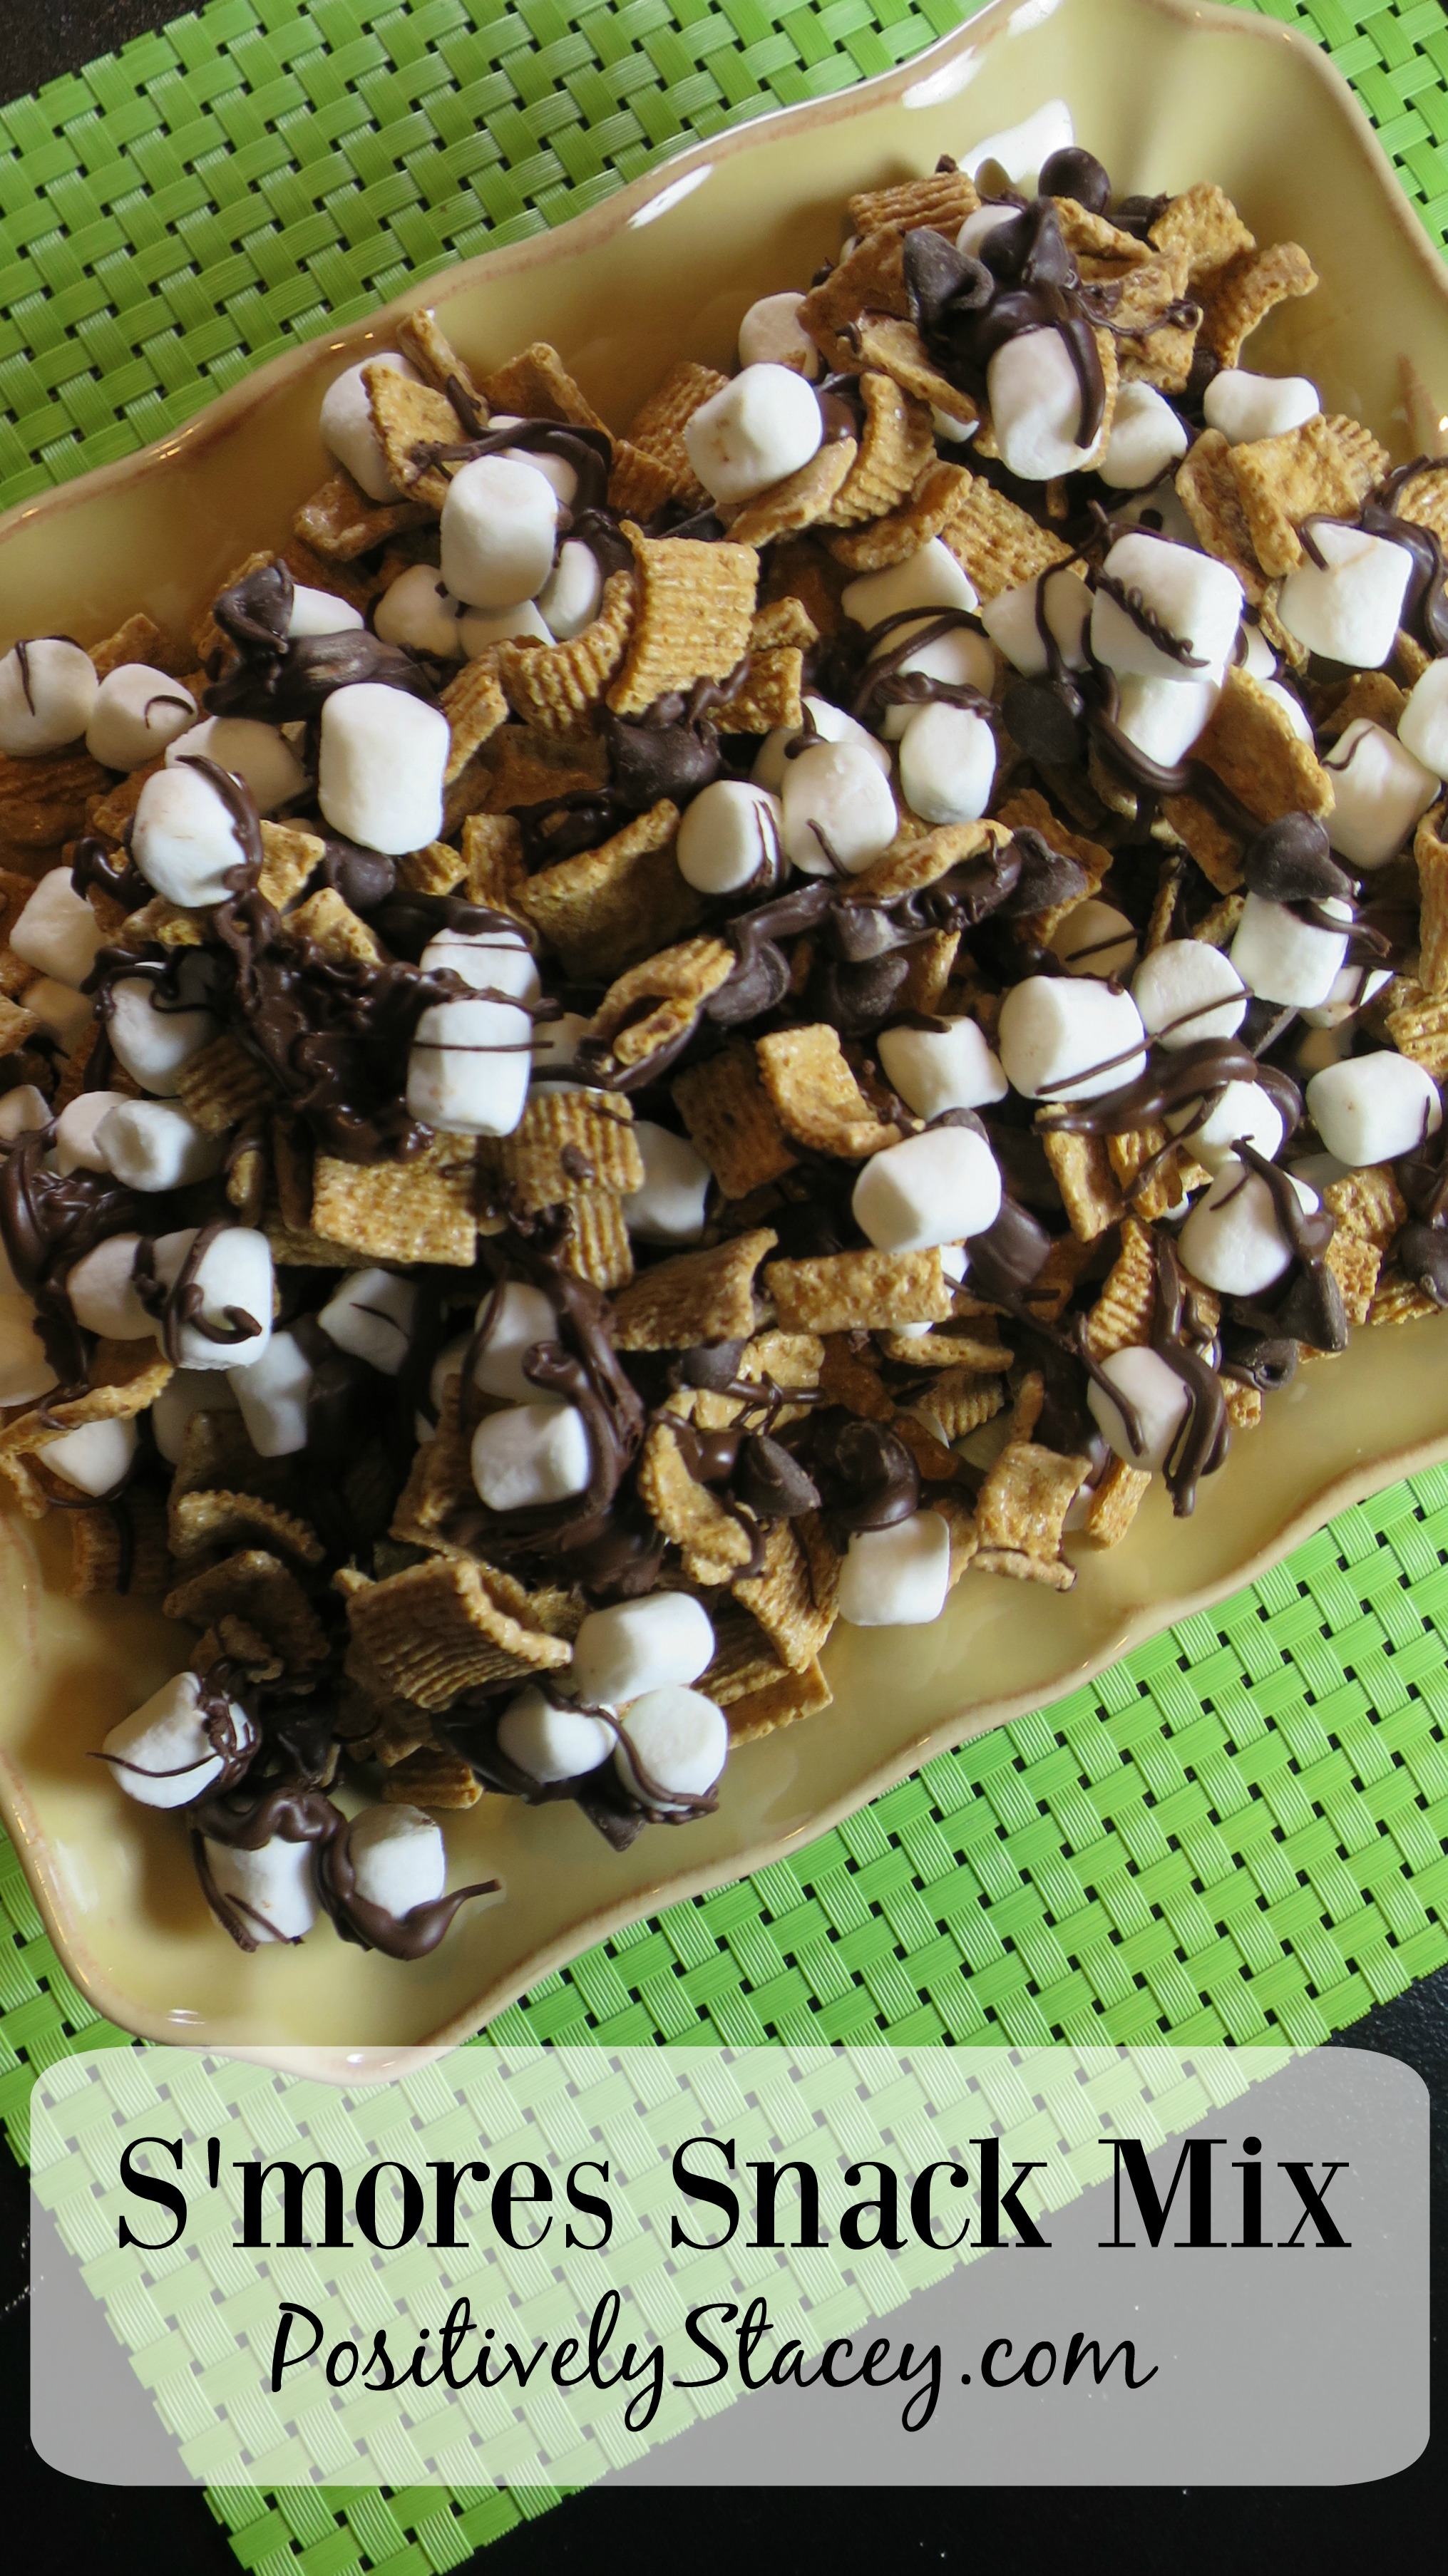 This S'mores Snack mix is down-right delicious! A perfect sleepover or anytime snack.